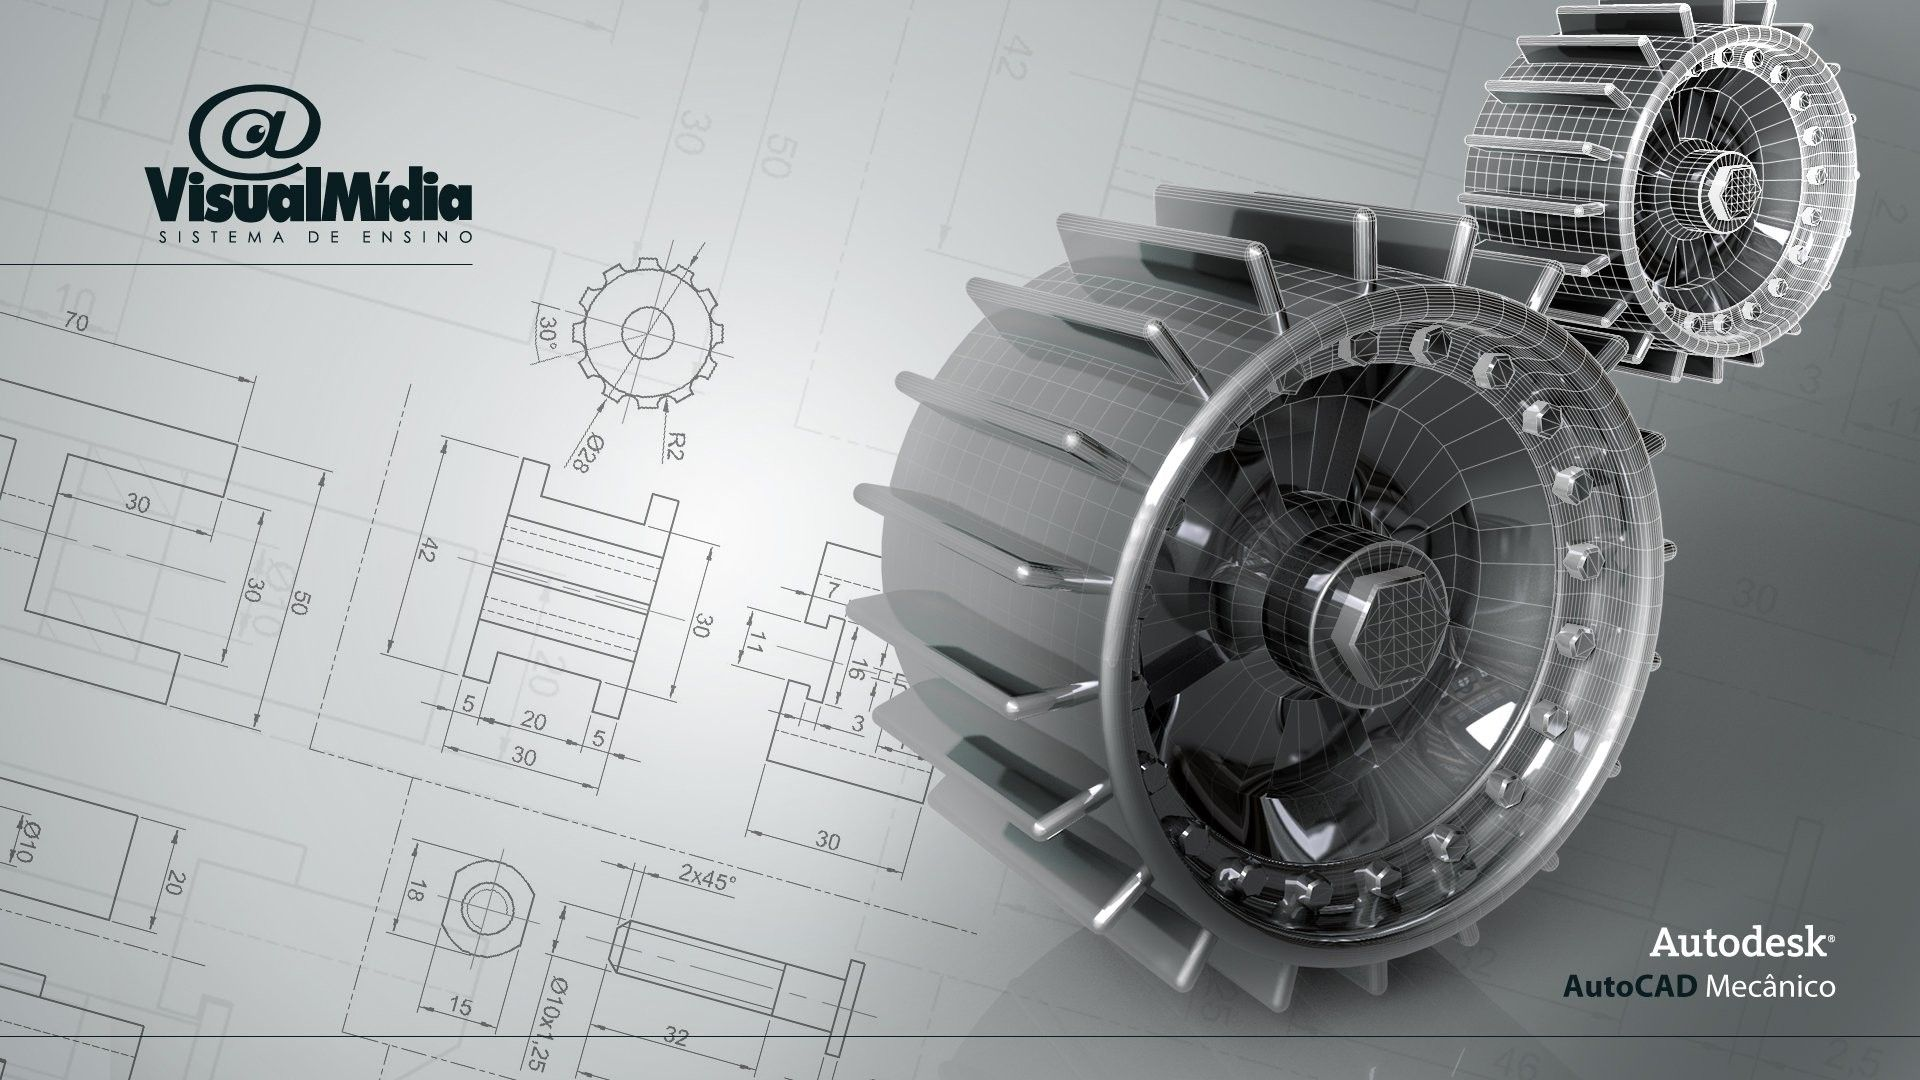 1920x1080 Free Hd Engineering Wallpapers For Download Mechanical Design Drawing Wallpaper Technical Drawing